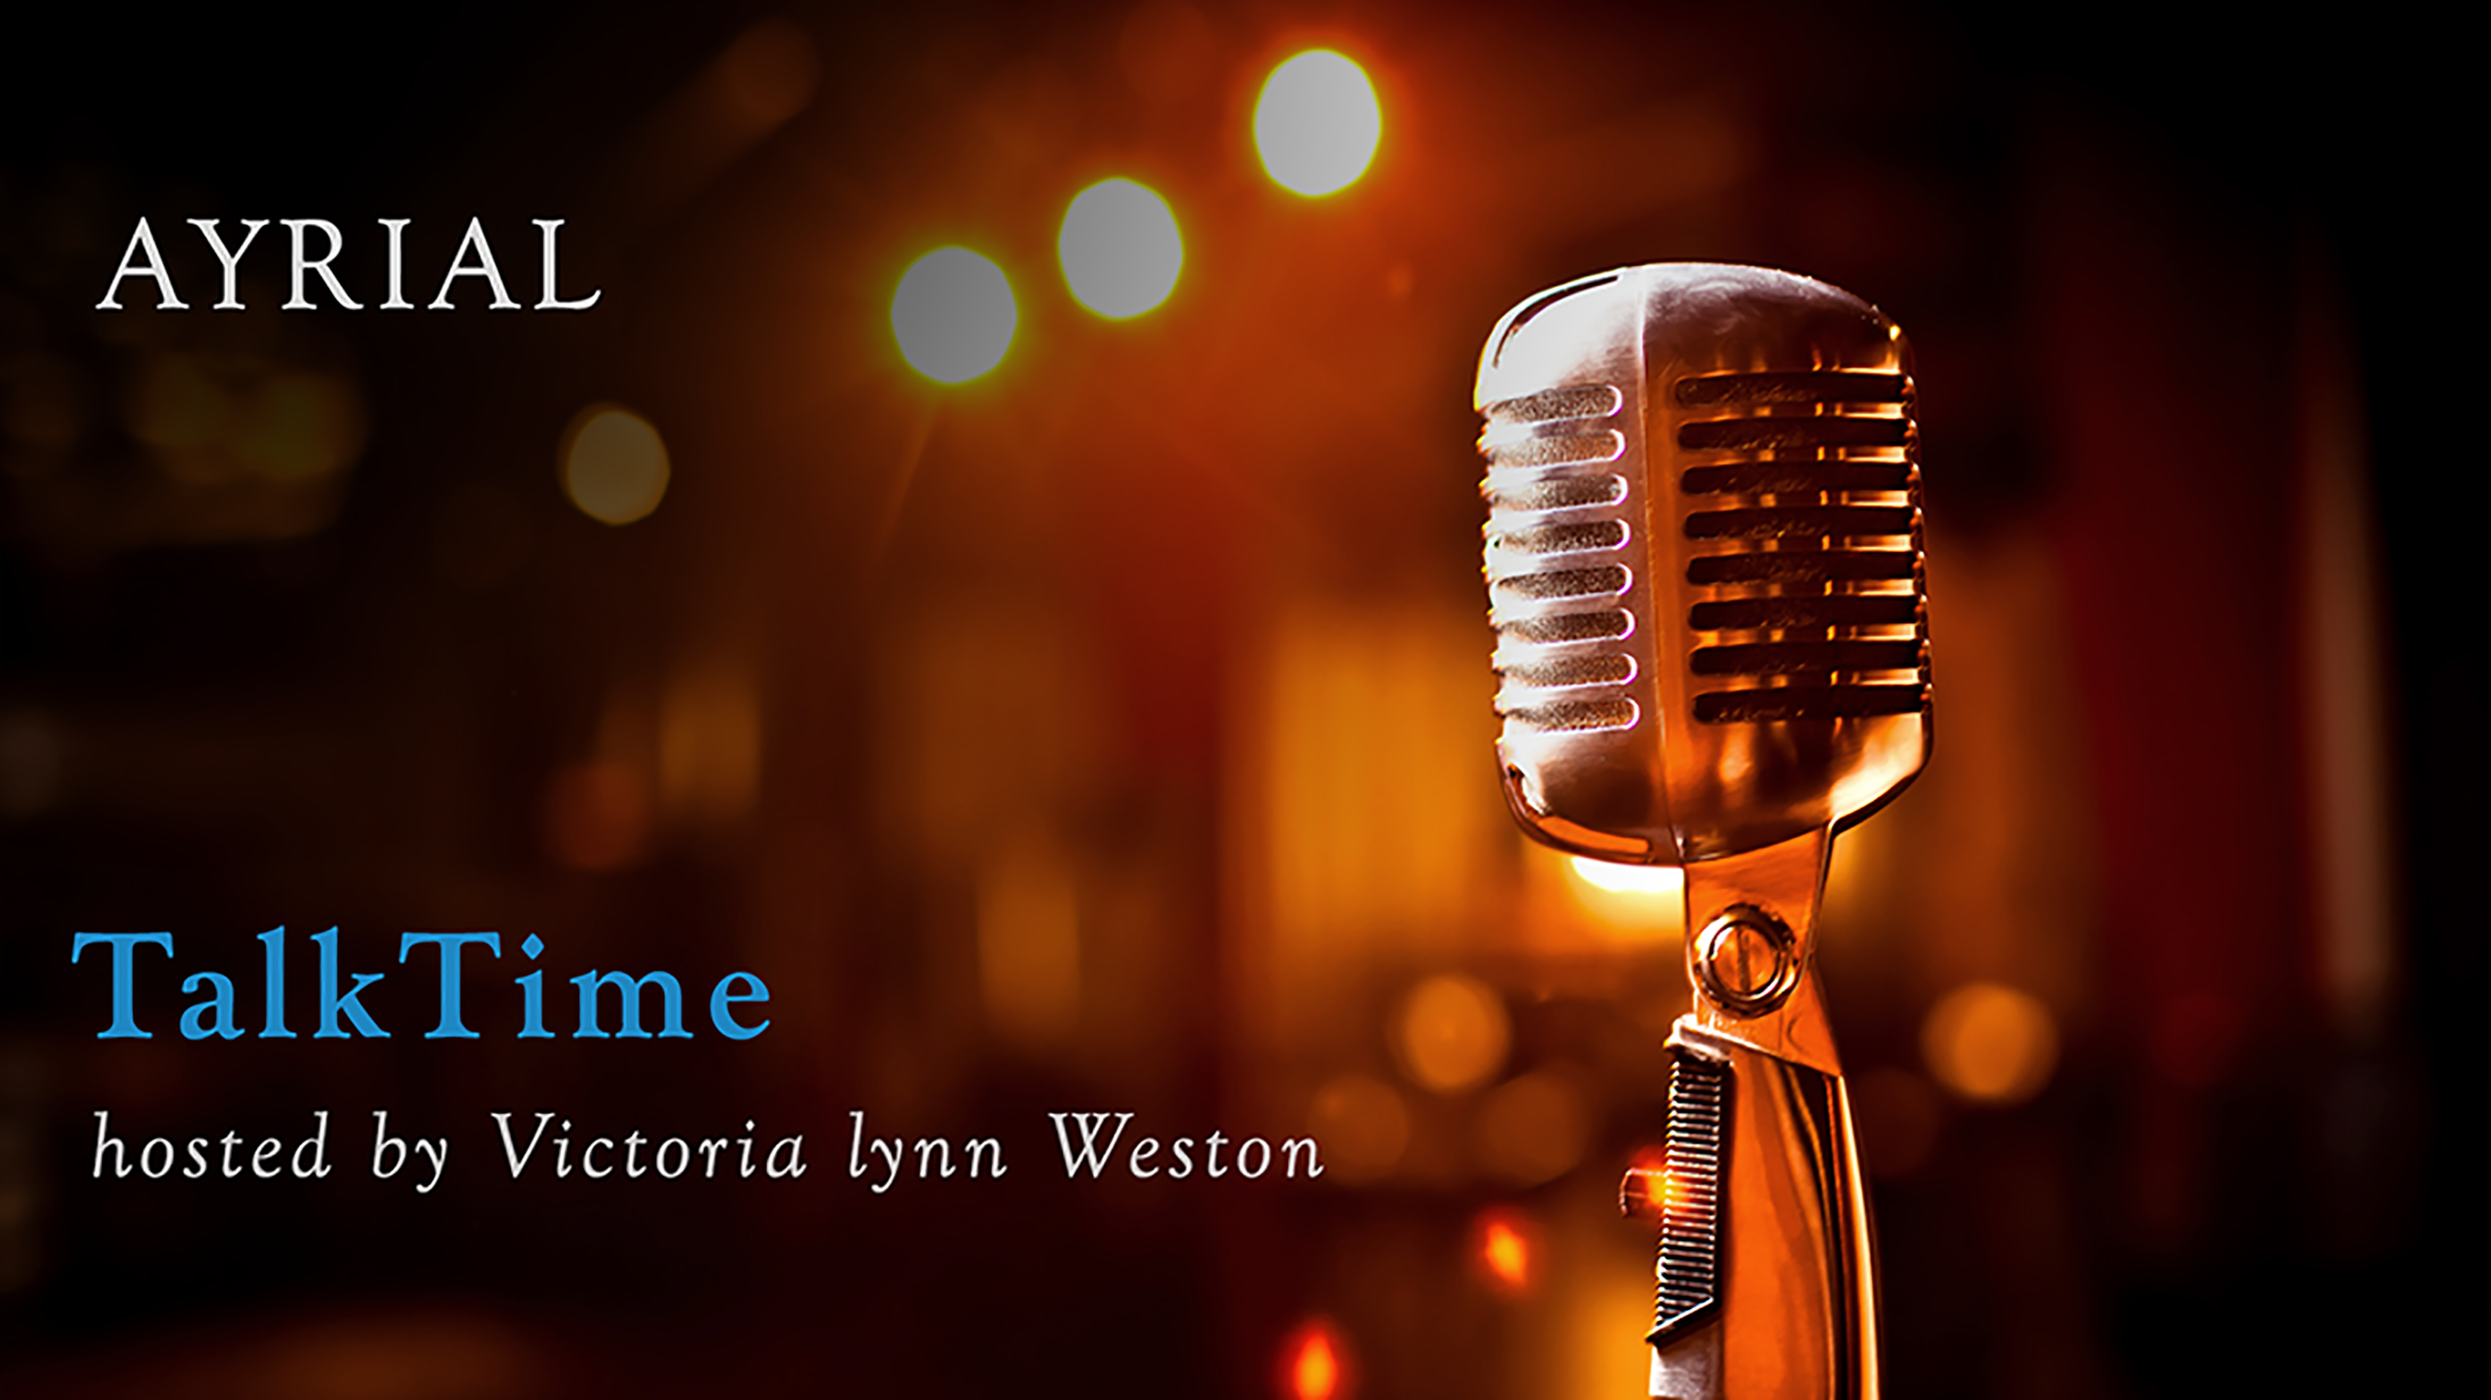 AYRIAL TalkTime hosted by Victoria lynn Weston